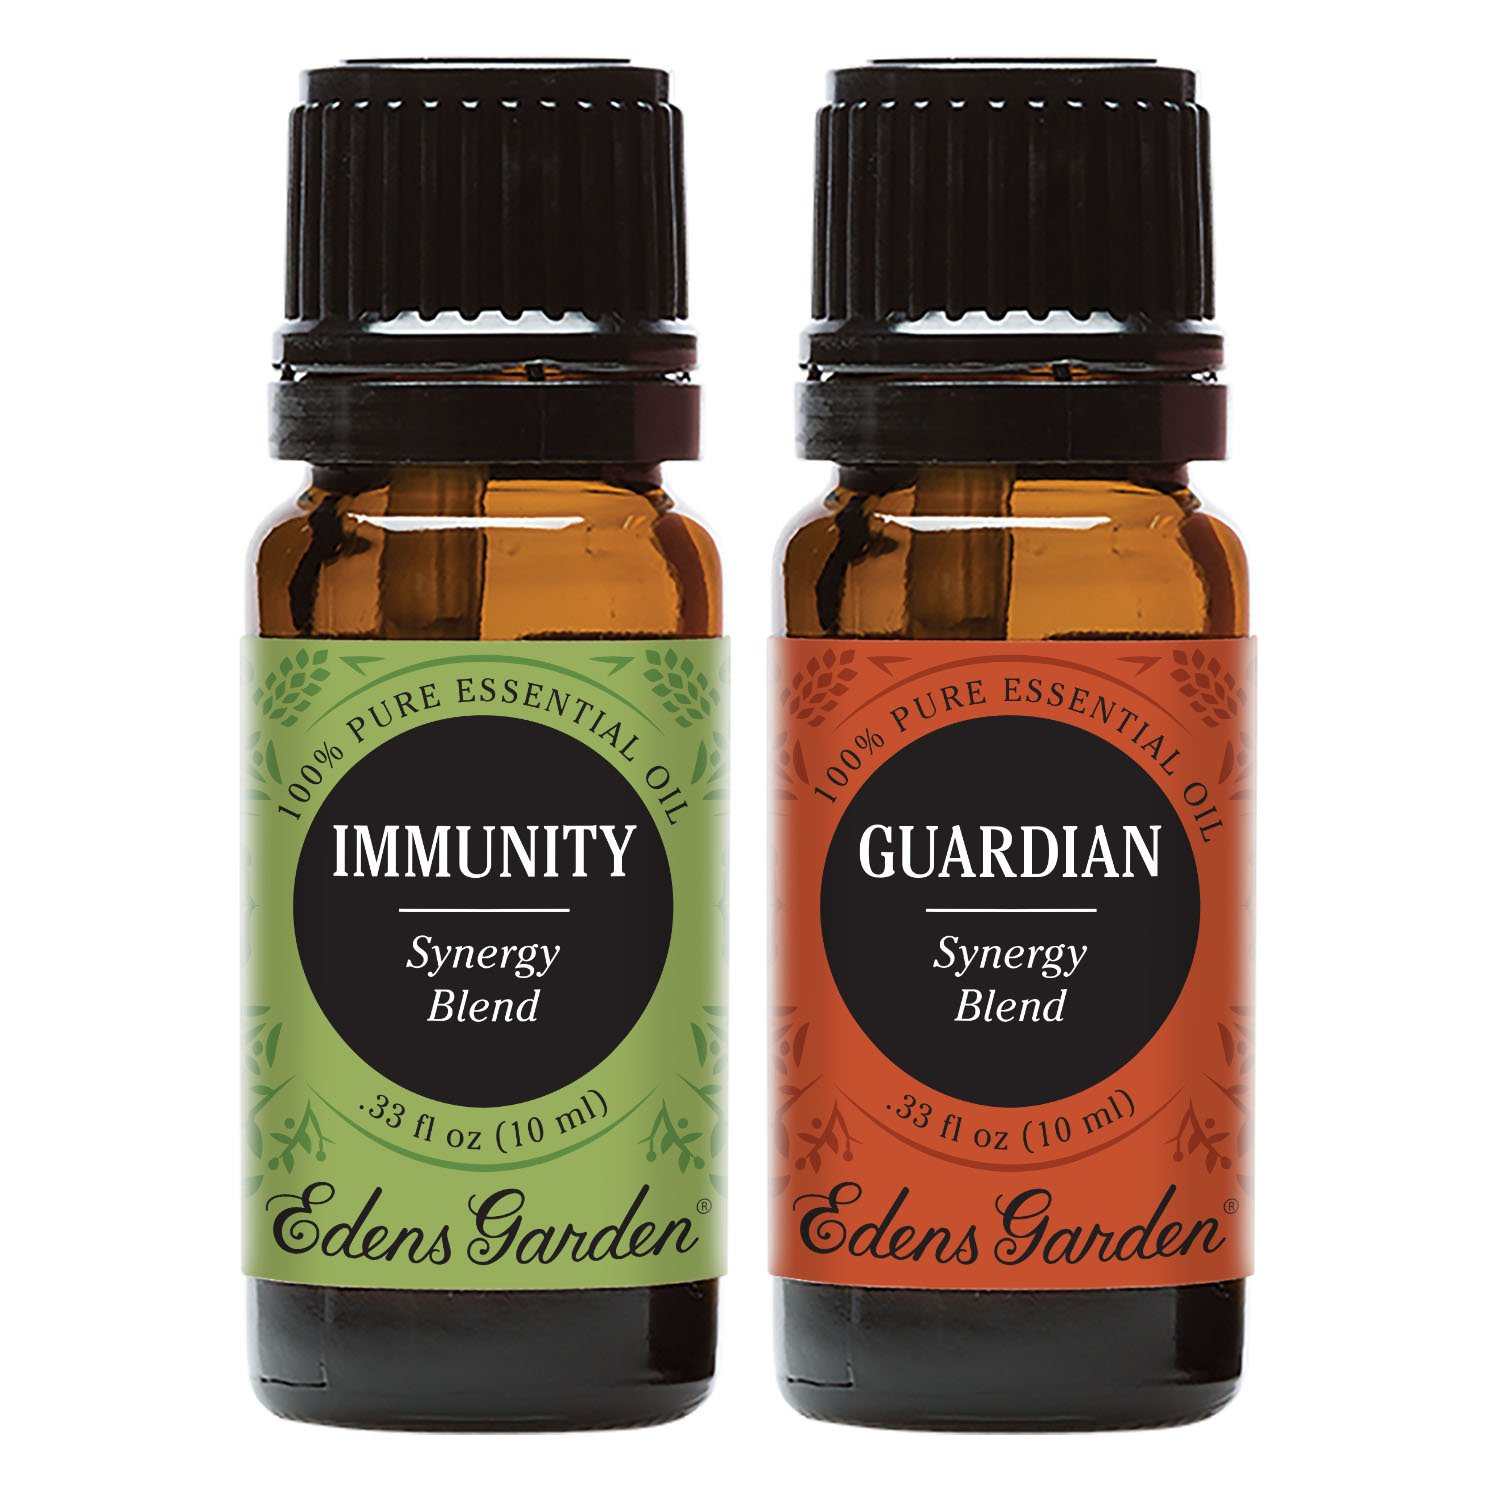 Edens Garden Guardian + Immunity Essential Oil Set, Best 100% Pure Aromatherapy Starter Kit (For Diffuser & Therapeutic Use), 10 ml